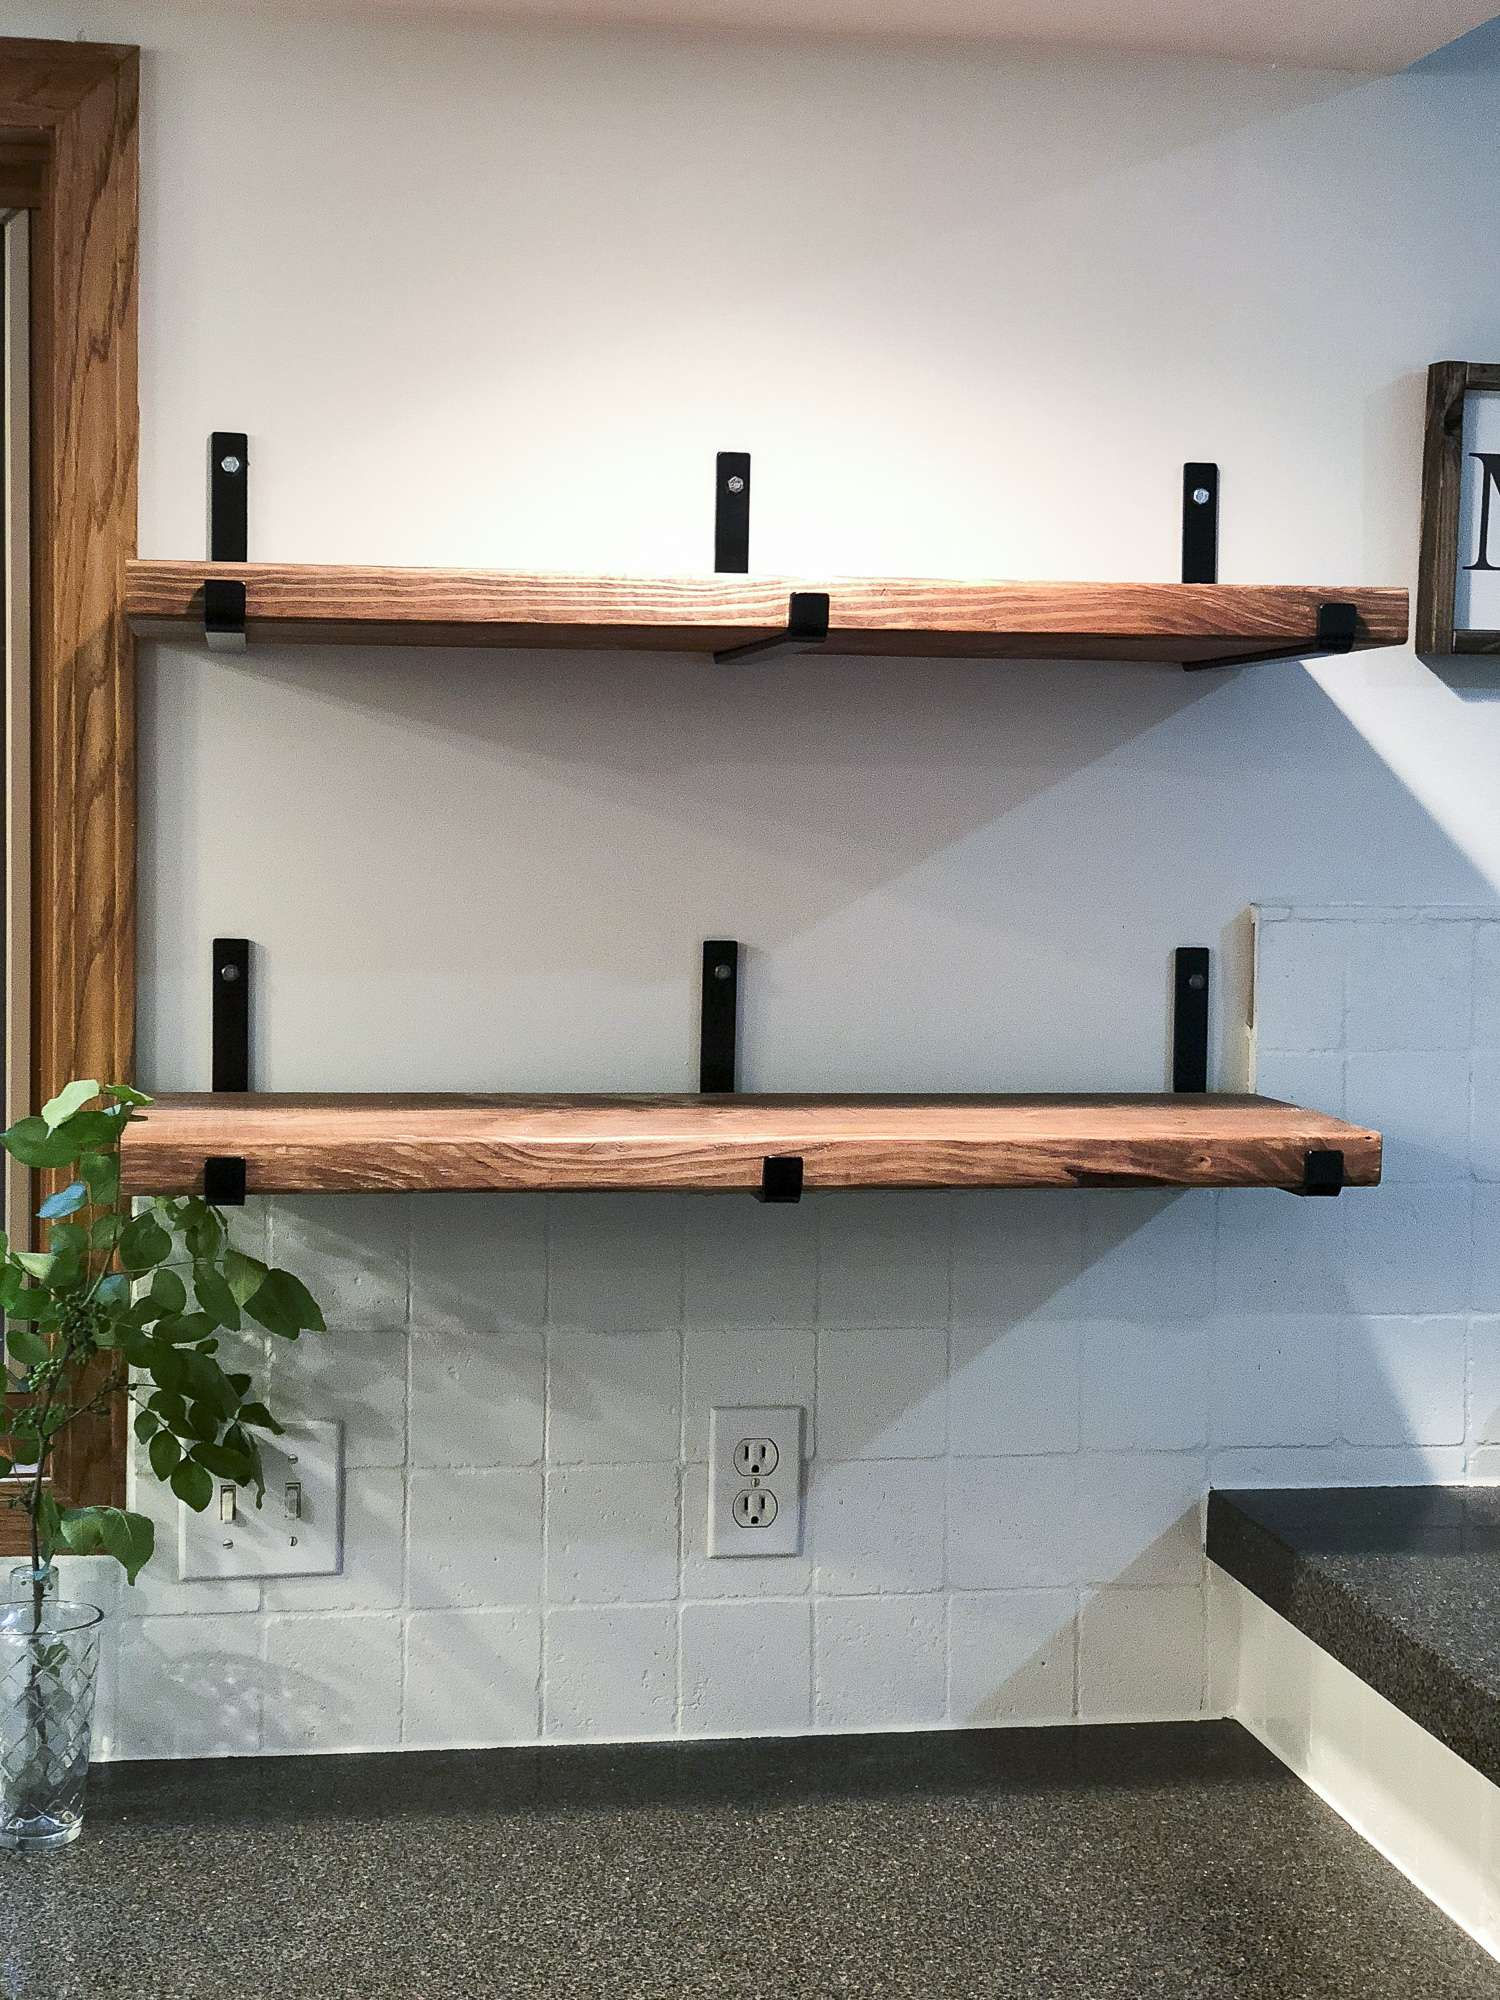 Wall To Wall Shelves simple wall shelves diy - easy craft ideas